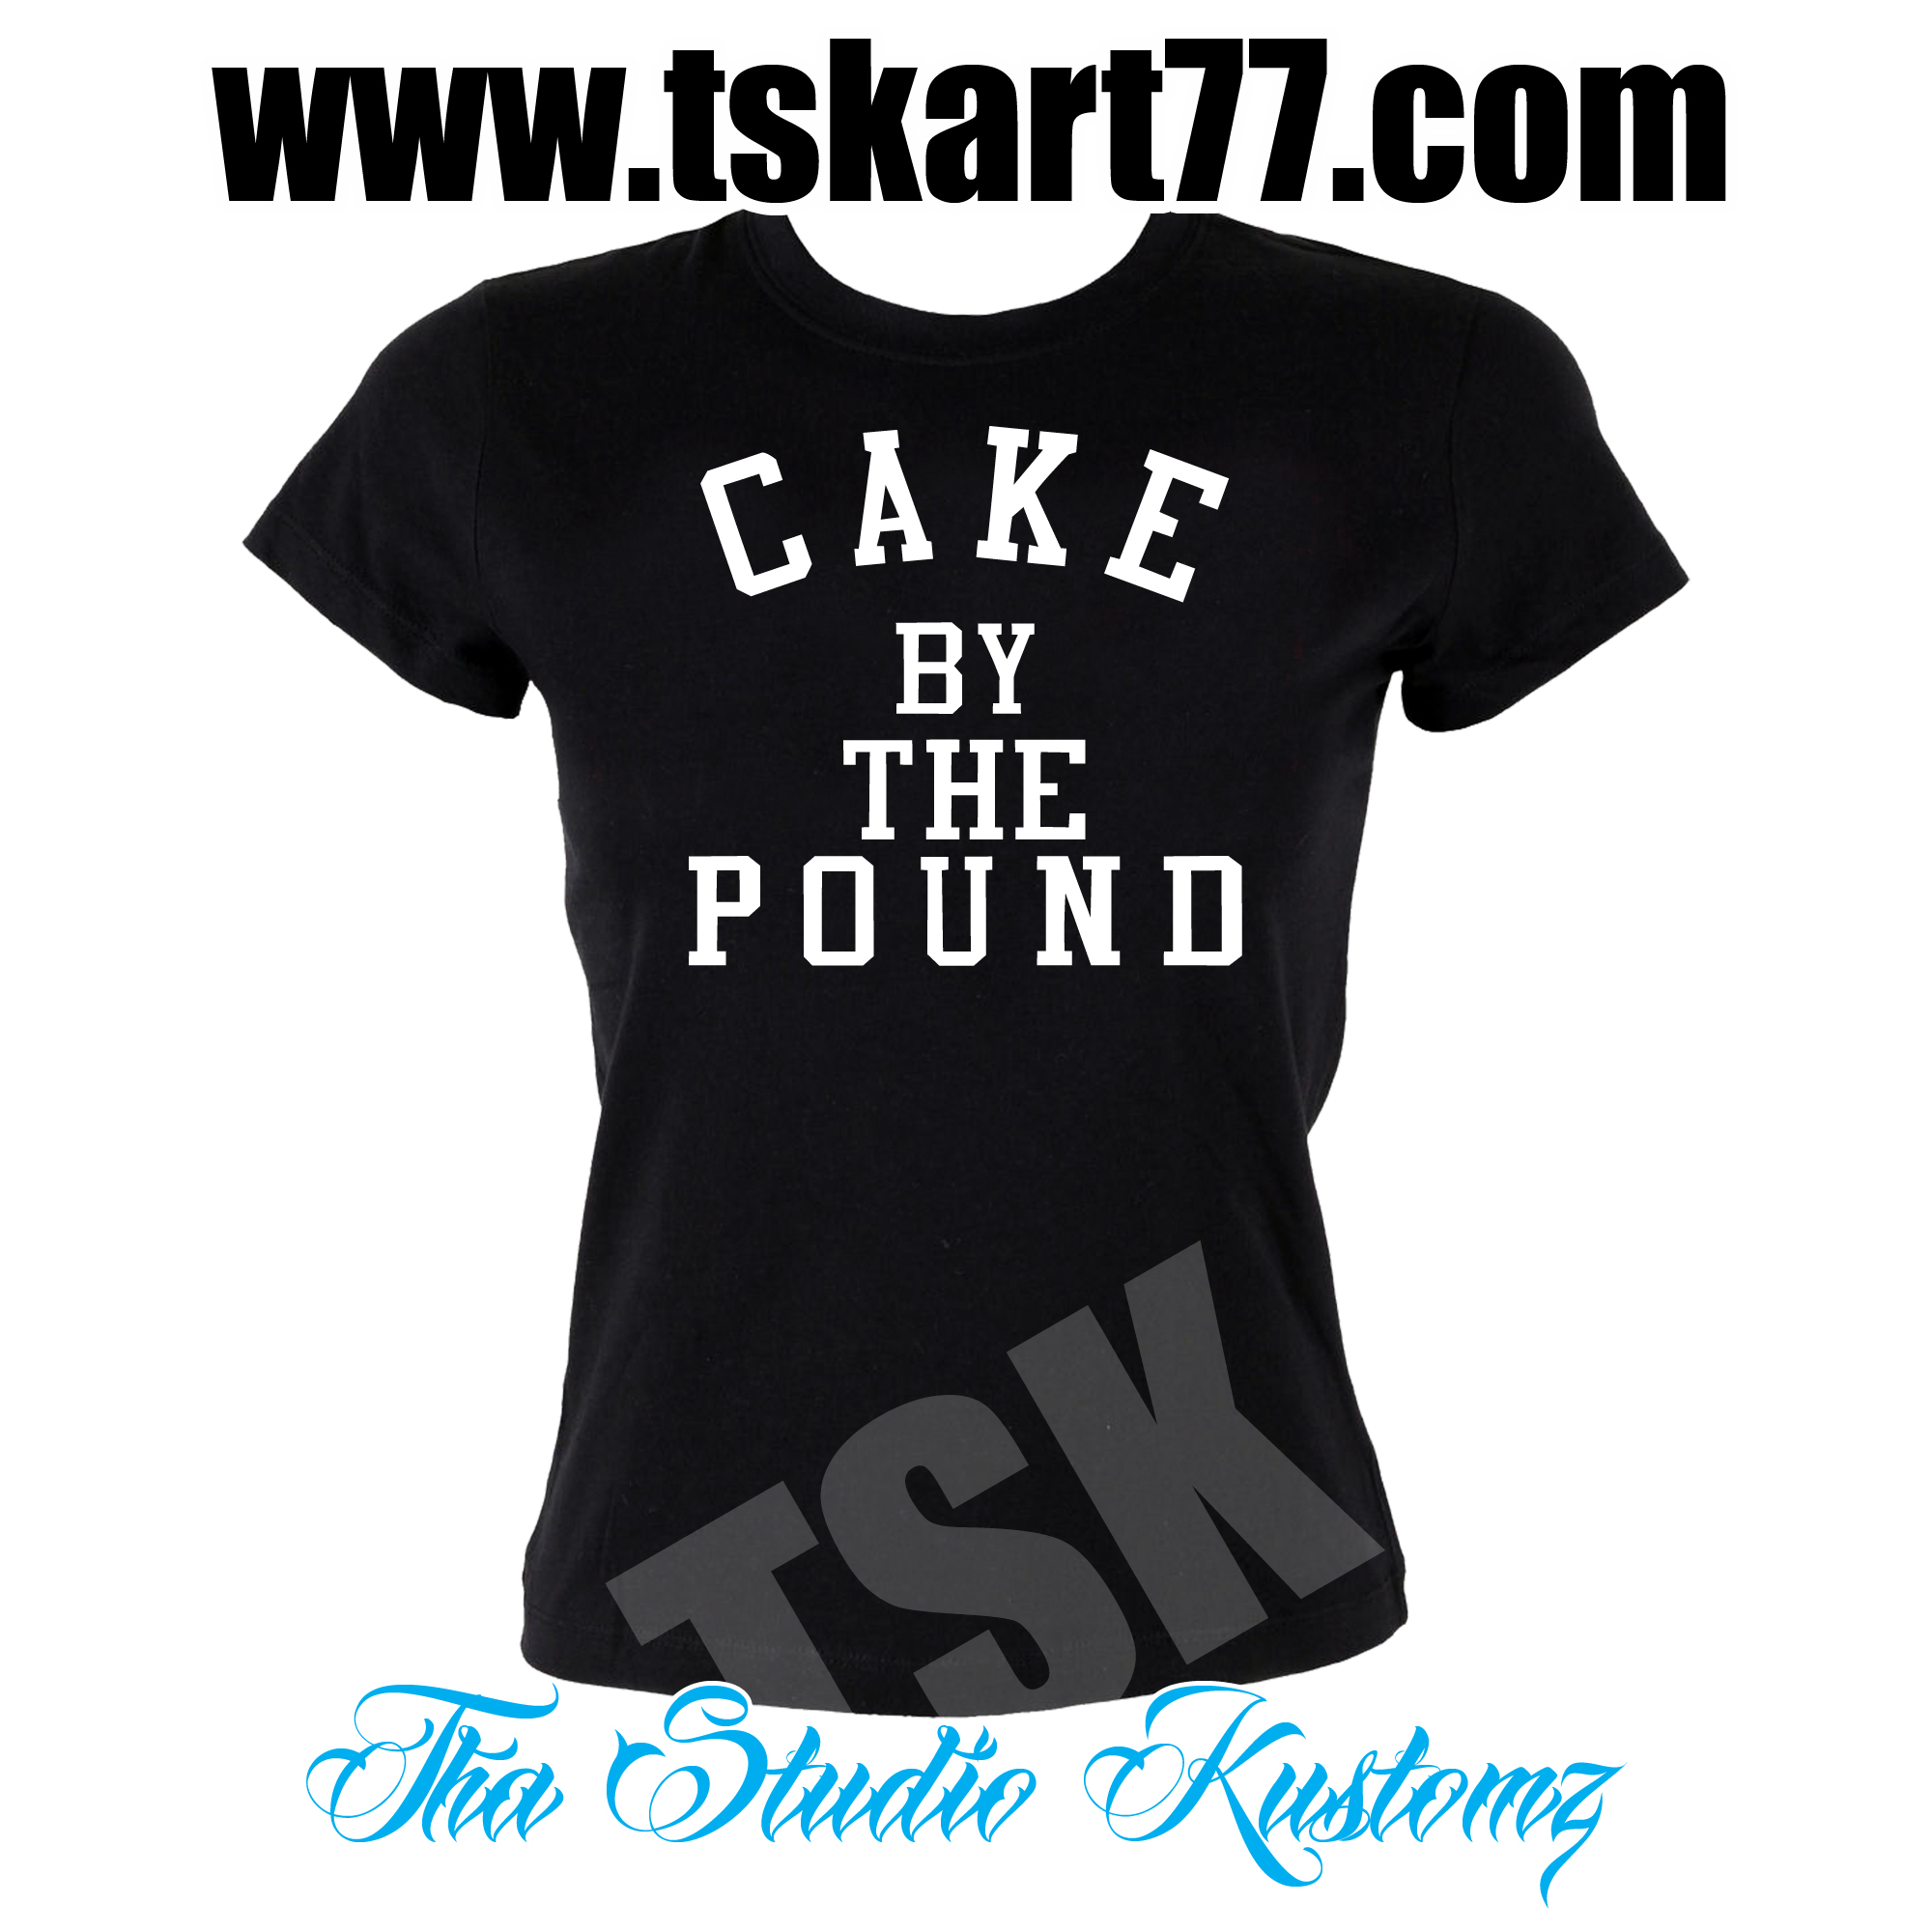 62699ad63f585 Cake by the Pound on Storenvy